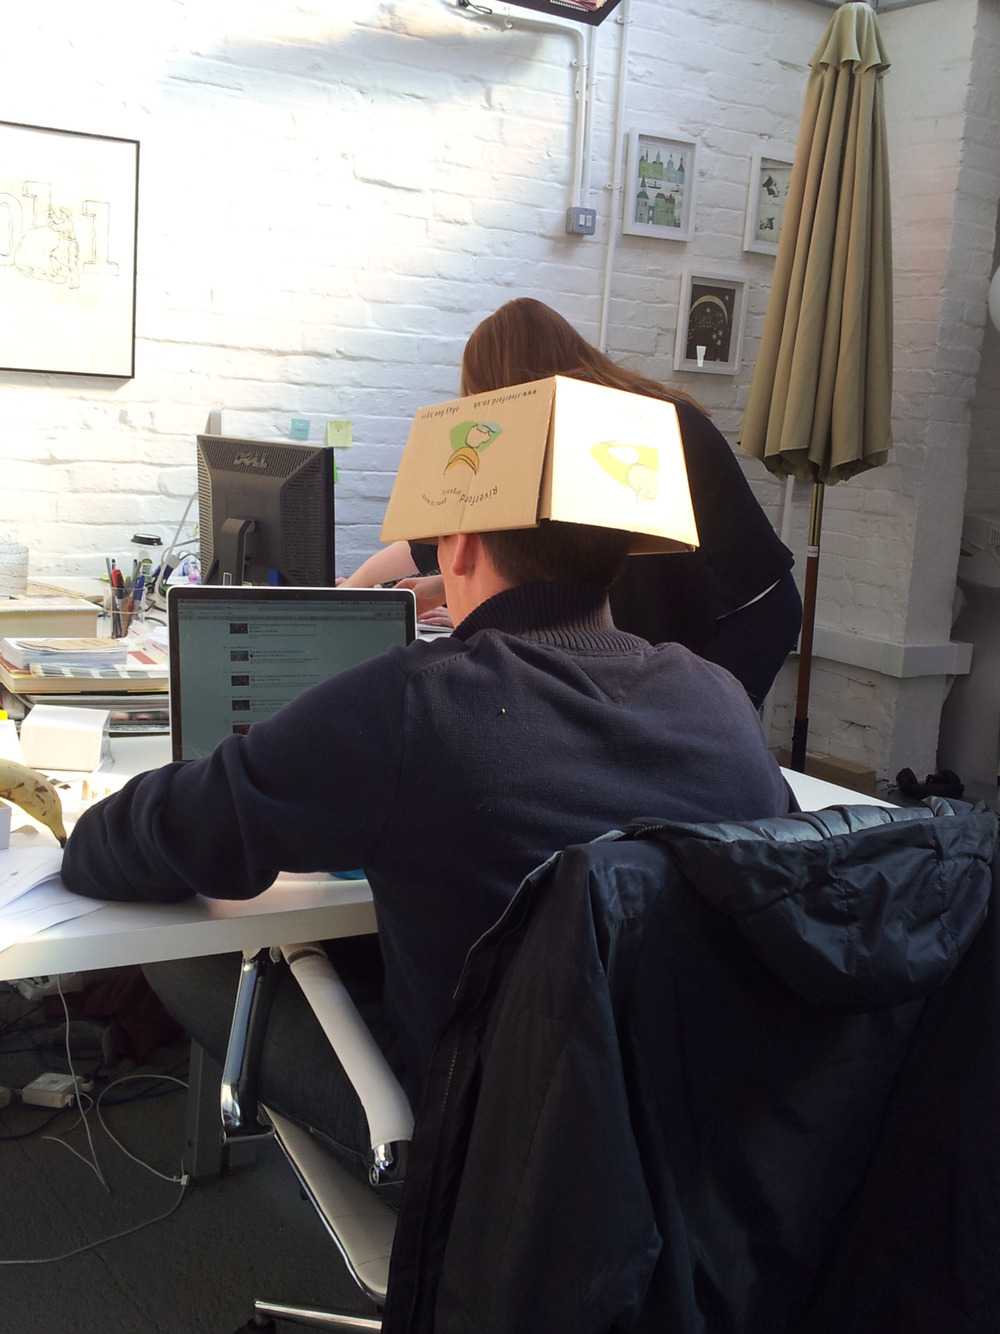 Here Brad demonstrates another use for our weekly fruit deliveries. When it comes to seeing your screen in the sun, sometimes the only answer to a digital problem is an analogue solution…